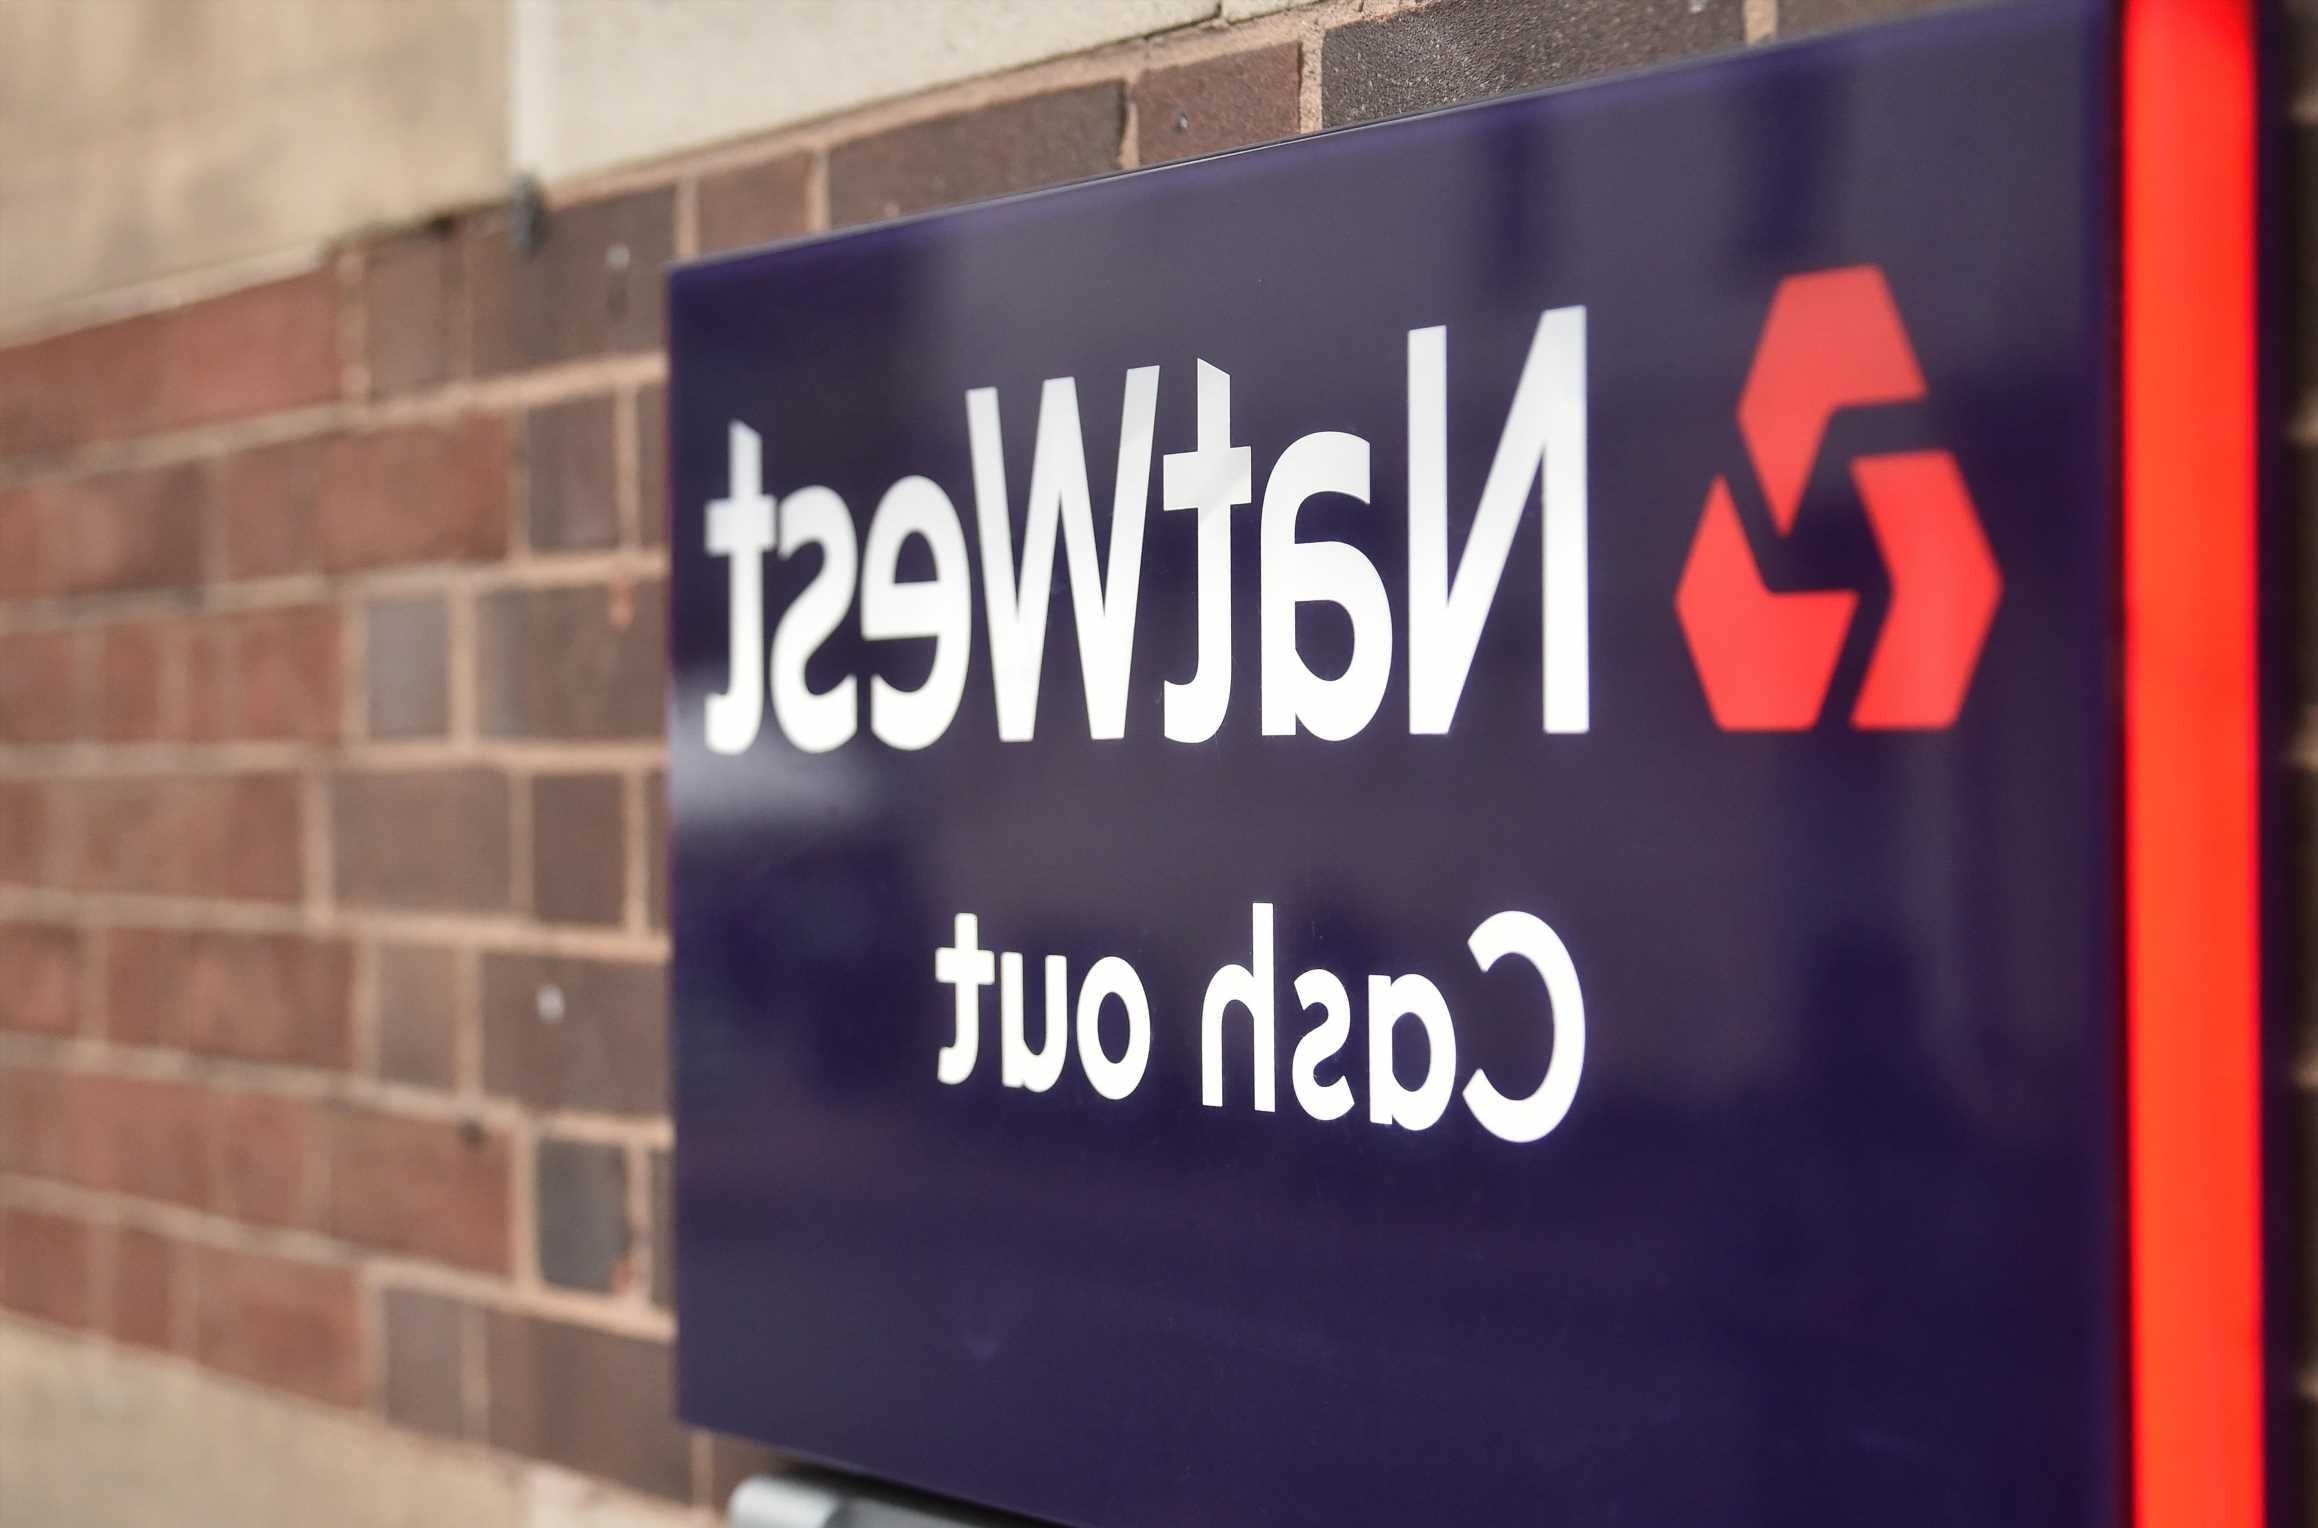 Natwest is offering £150 if you open a current account